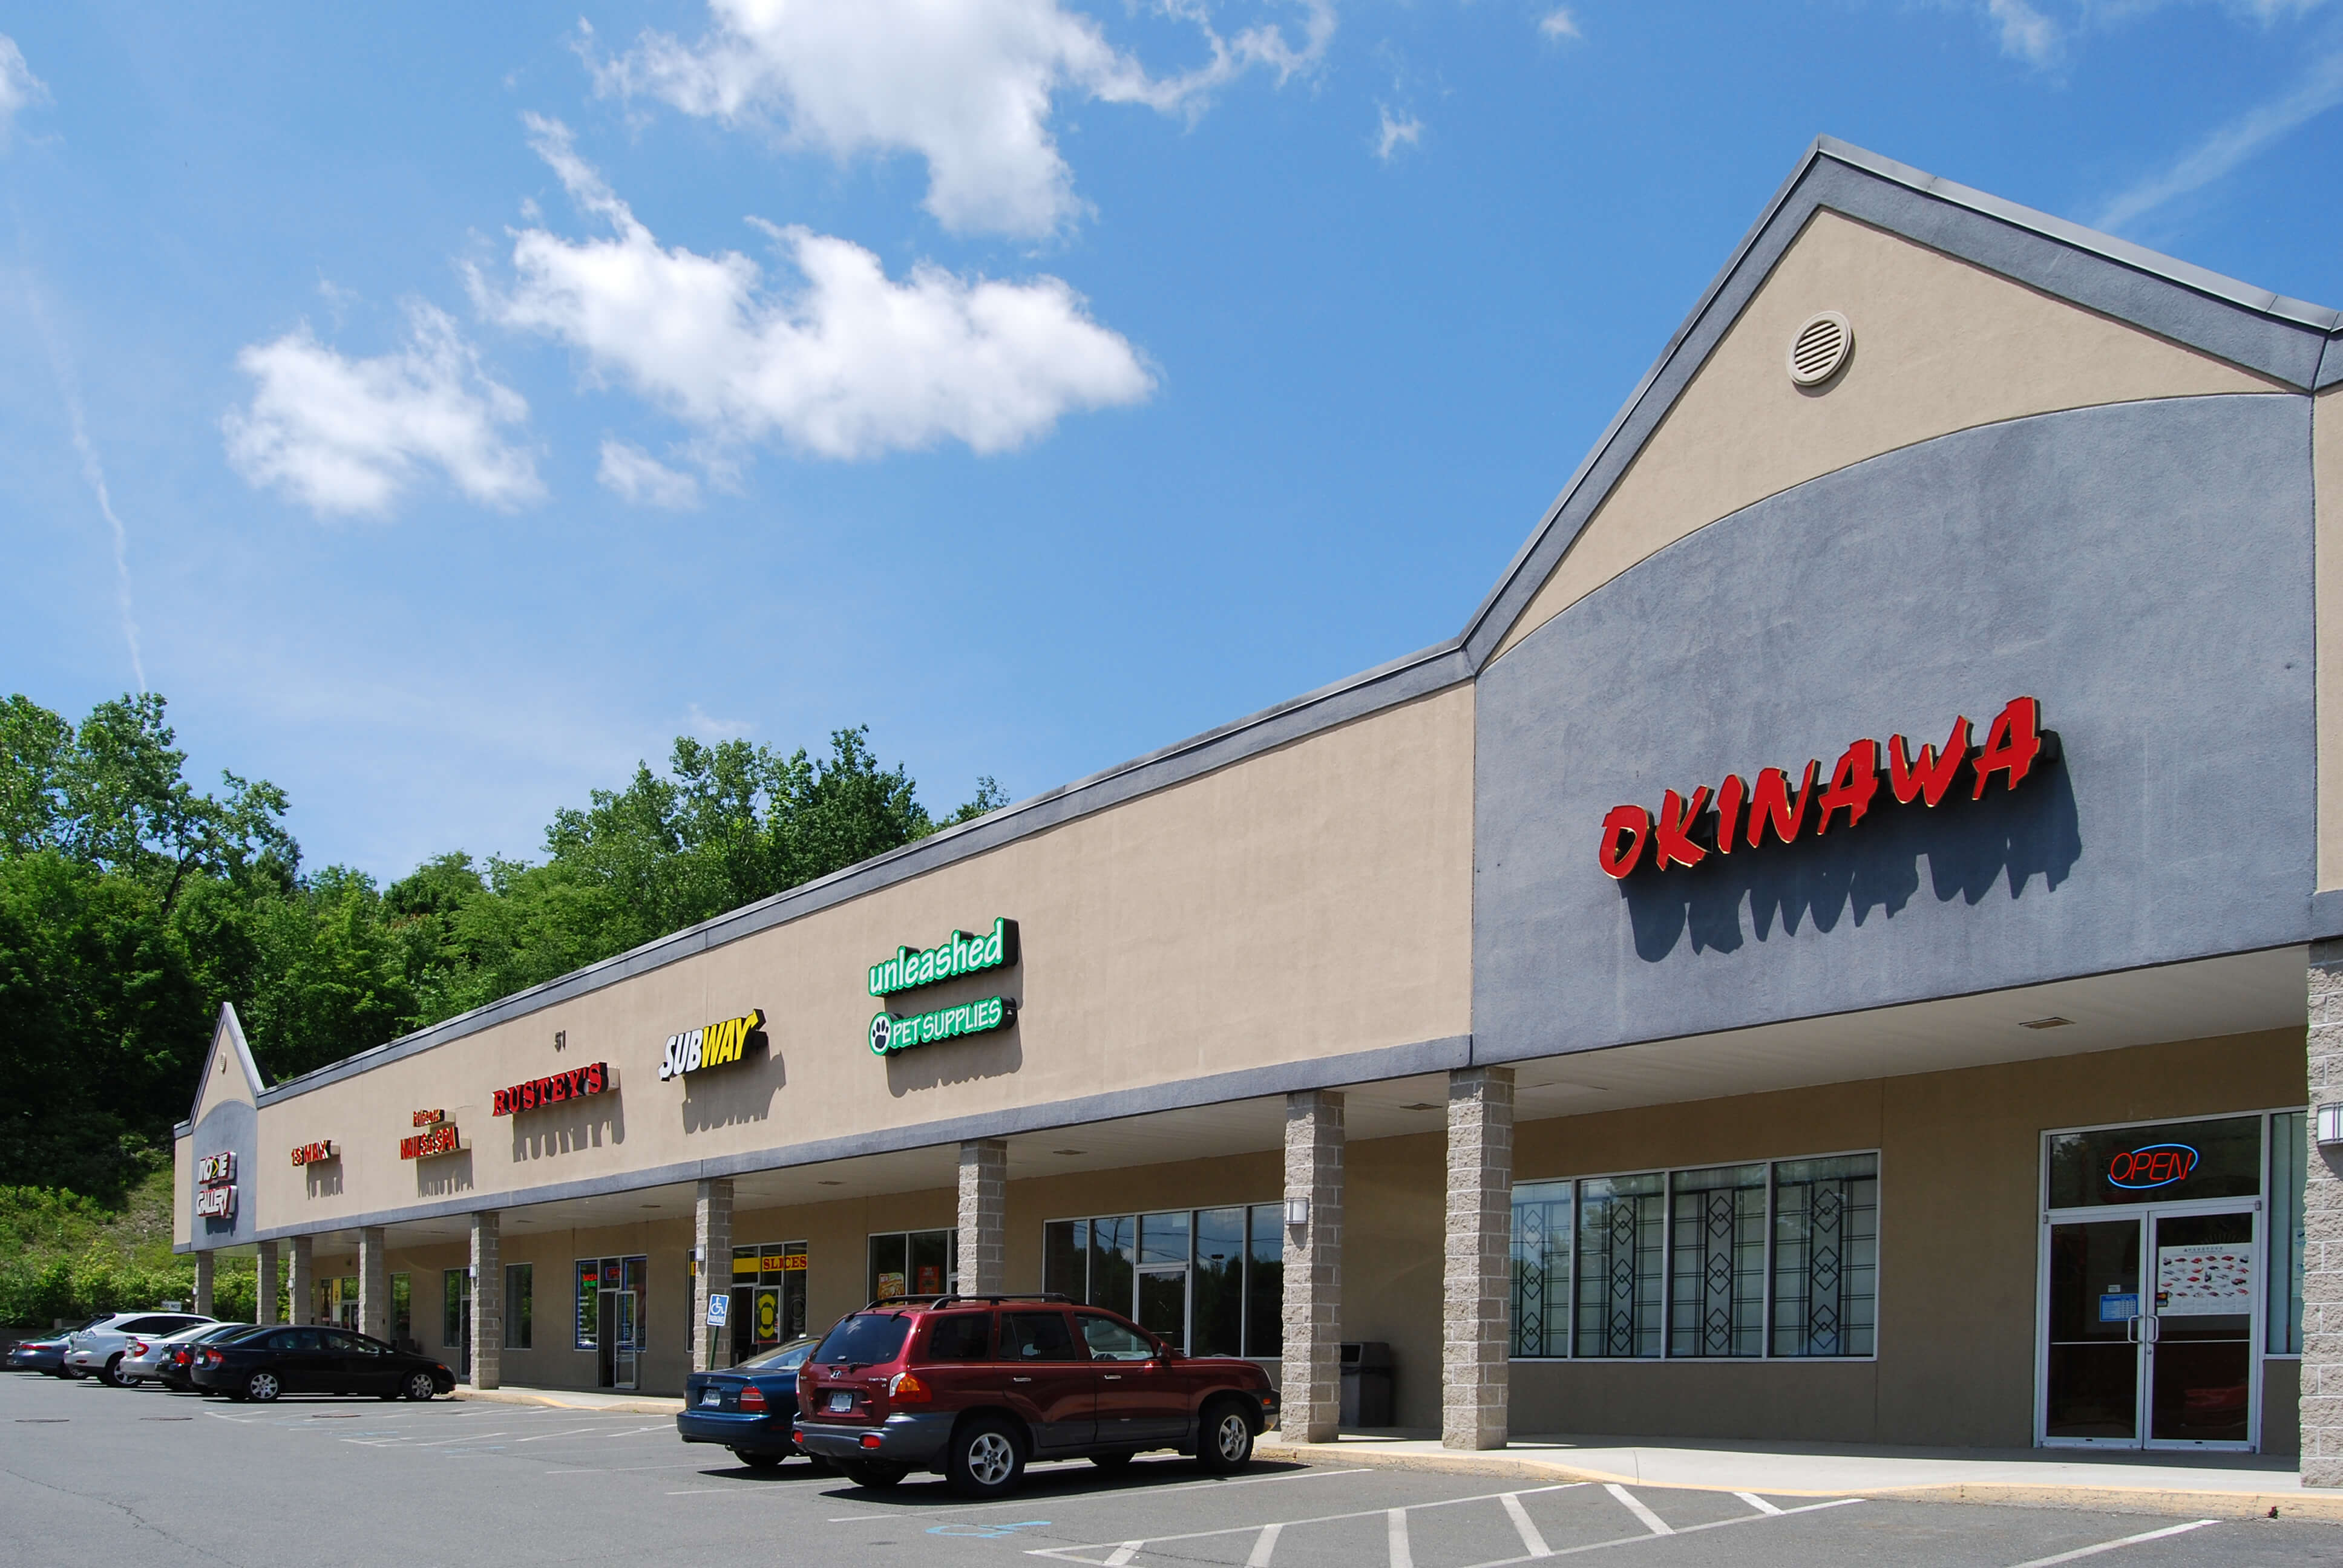 Class B retail property strip mall